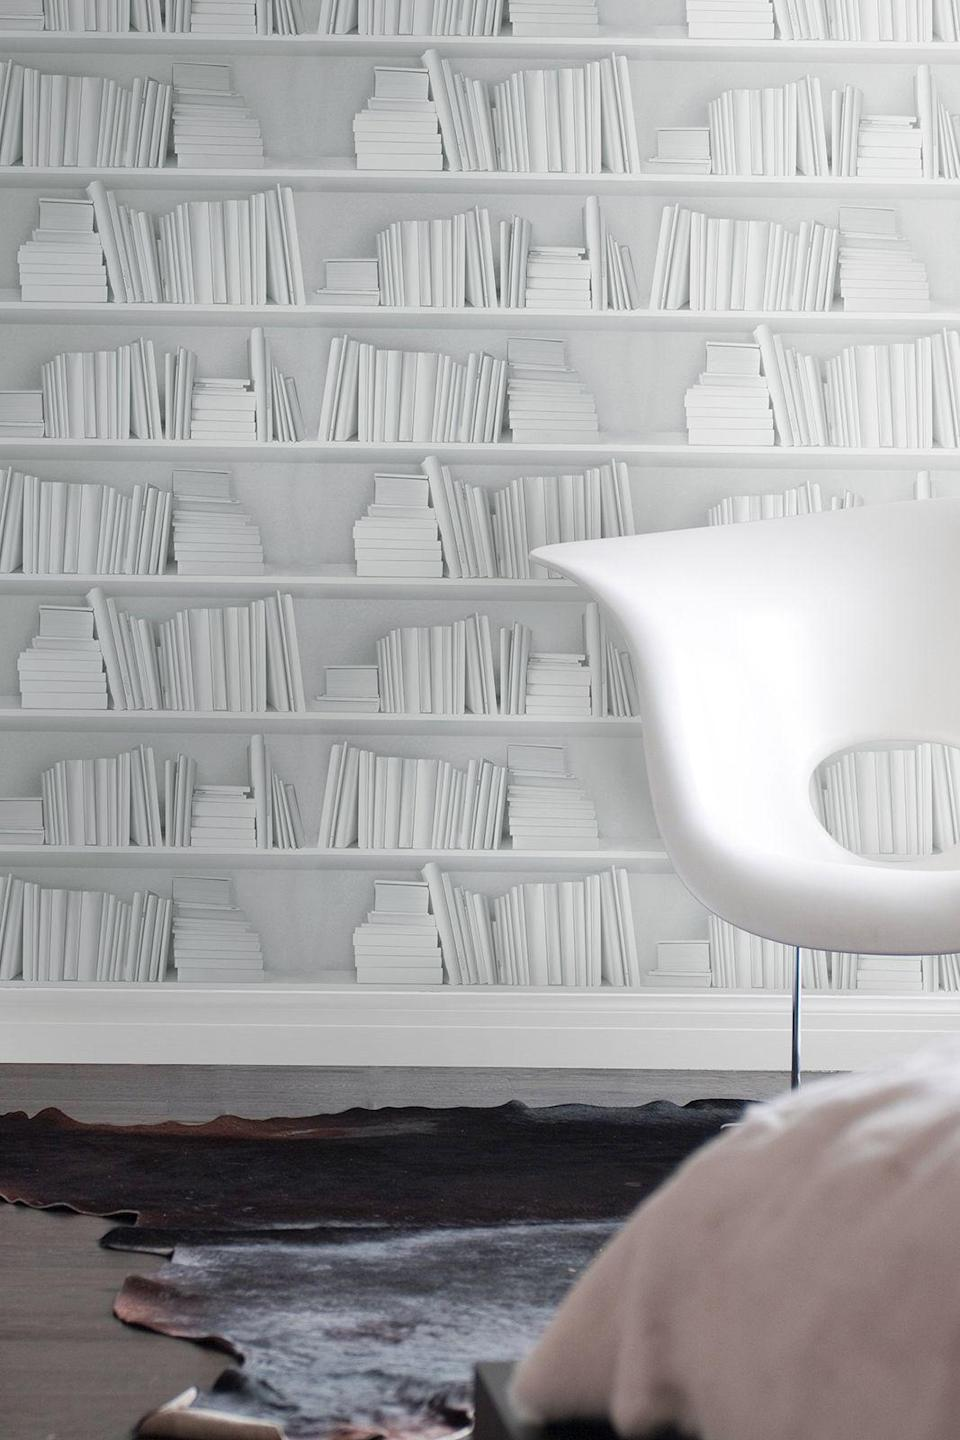 """<p>Books furnish a room but if you haven't the space to accommodate a library, this bookshelf-effect design adds depth and character without the clutter. And the dusting.</p><p><strong>I Love Retro</strong> Classic Bookshelf Wallpaper, £70 per 250 cm, available at <a href=""""https://www.iloveretro.co.uk/classic-bookshelf-wallpaper"""" rel=""""nofollow noopener"""" target=""""_blank"""" data-ylk=""""slk:I Love Retro"""" class=""""link rapid-noclick-resp"""">I Love Retro</a></p>"""